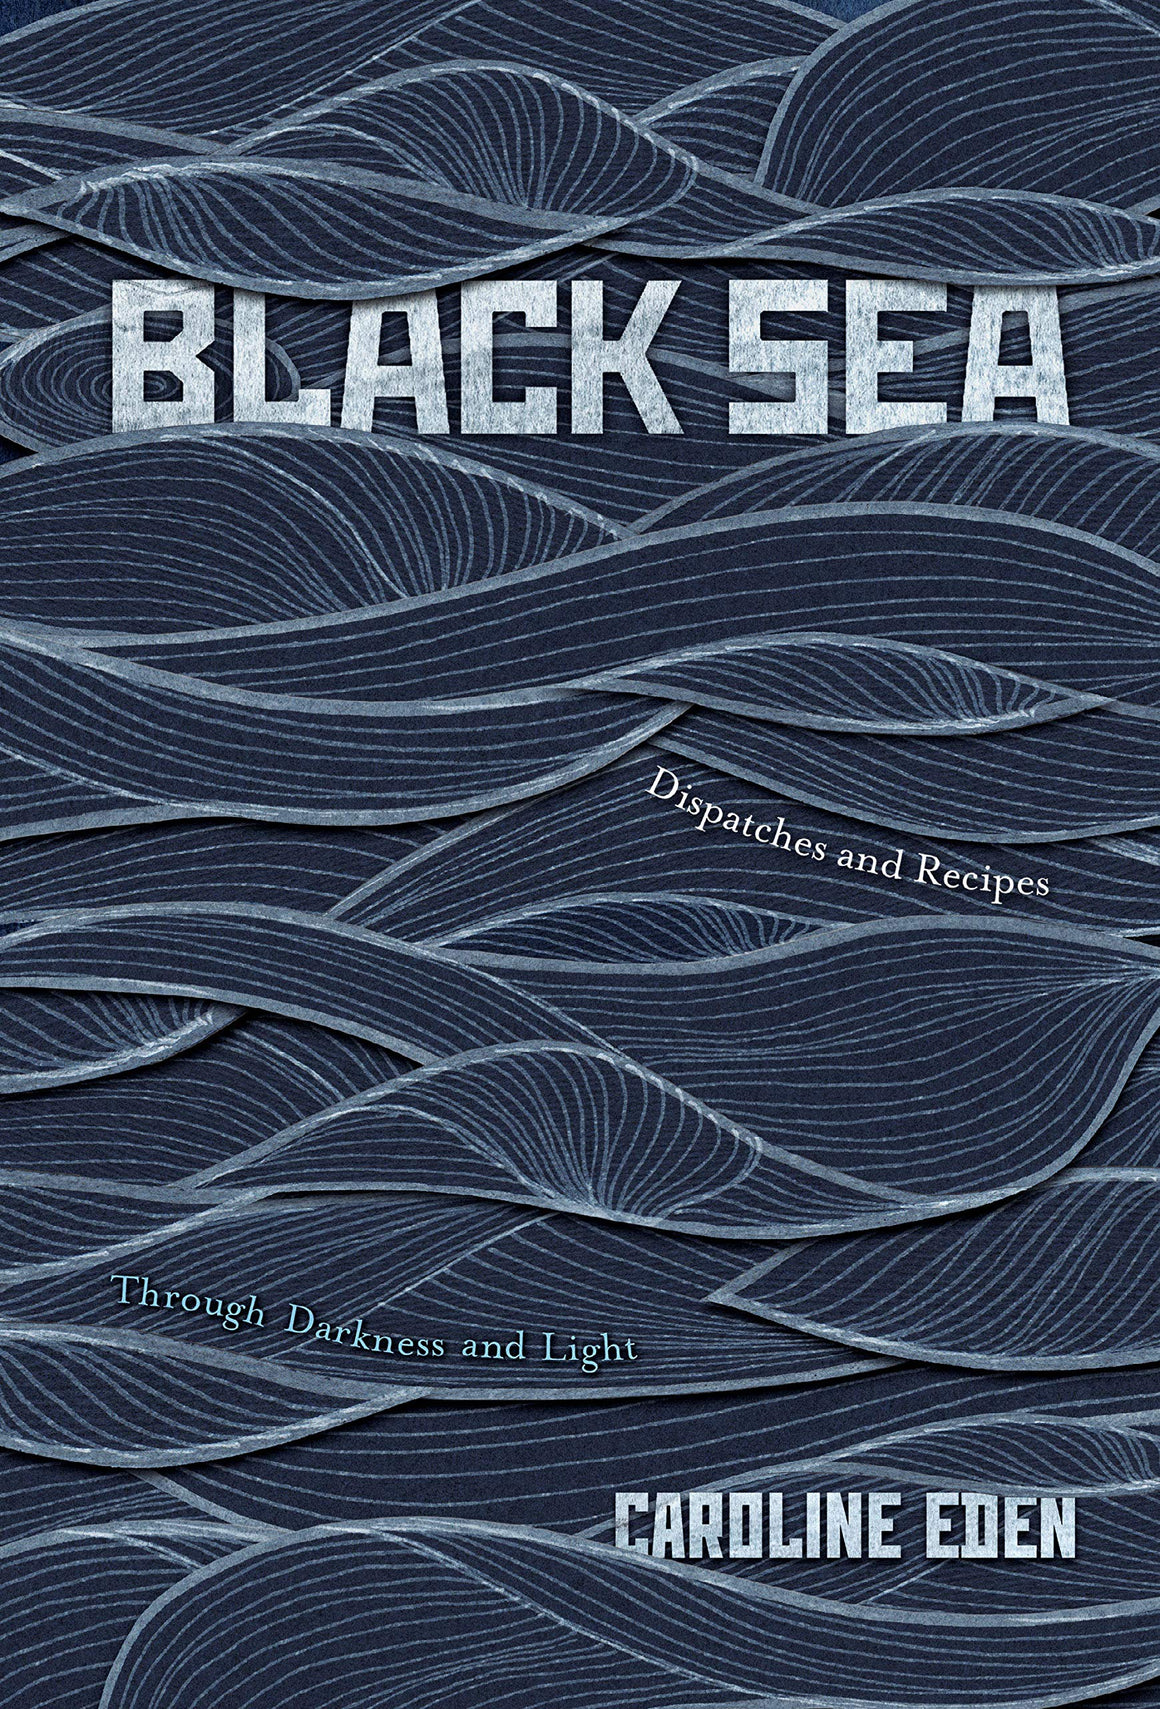 Caroline Eden. Black Sea: Dispatches and Recipes, Through Darkness and Light